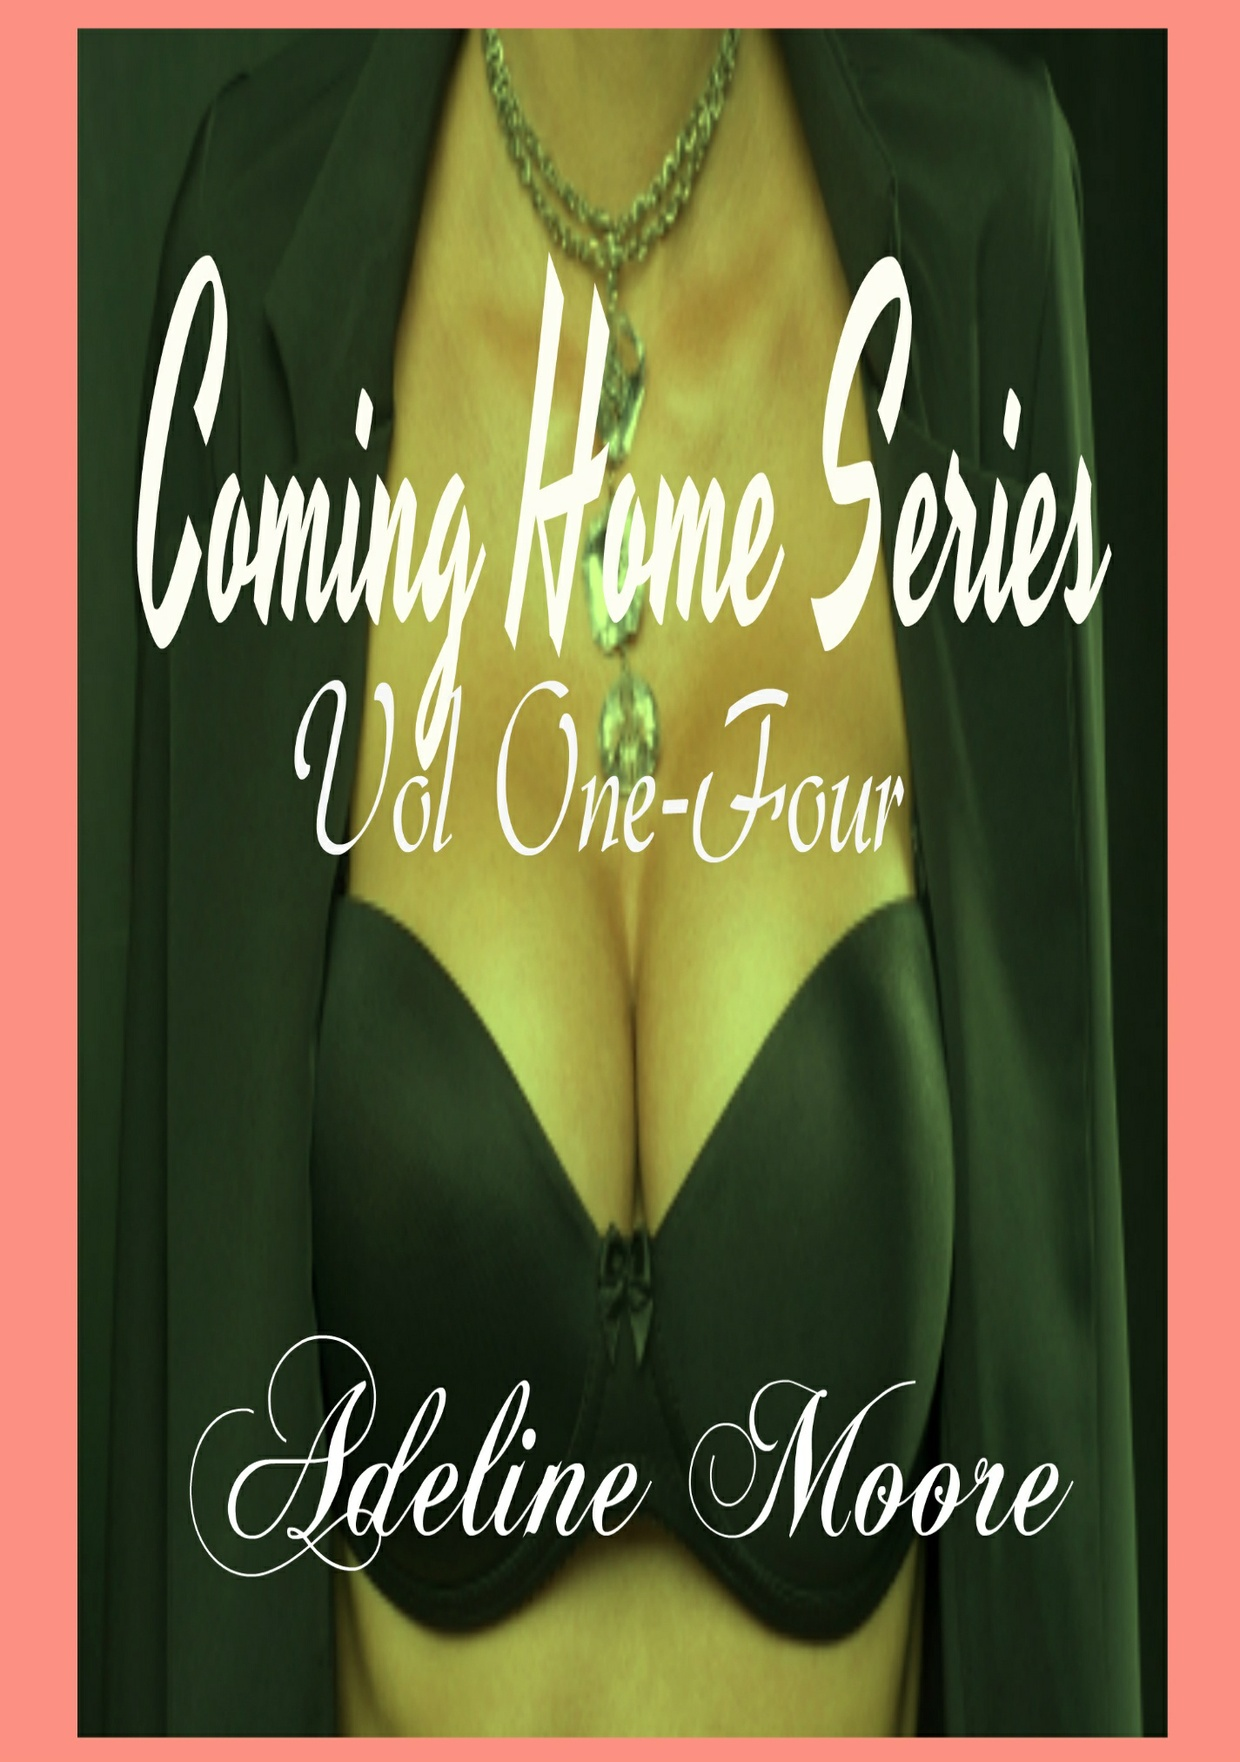 Coming Home Series Vol. one - four